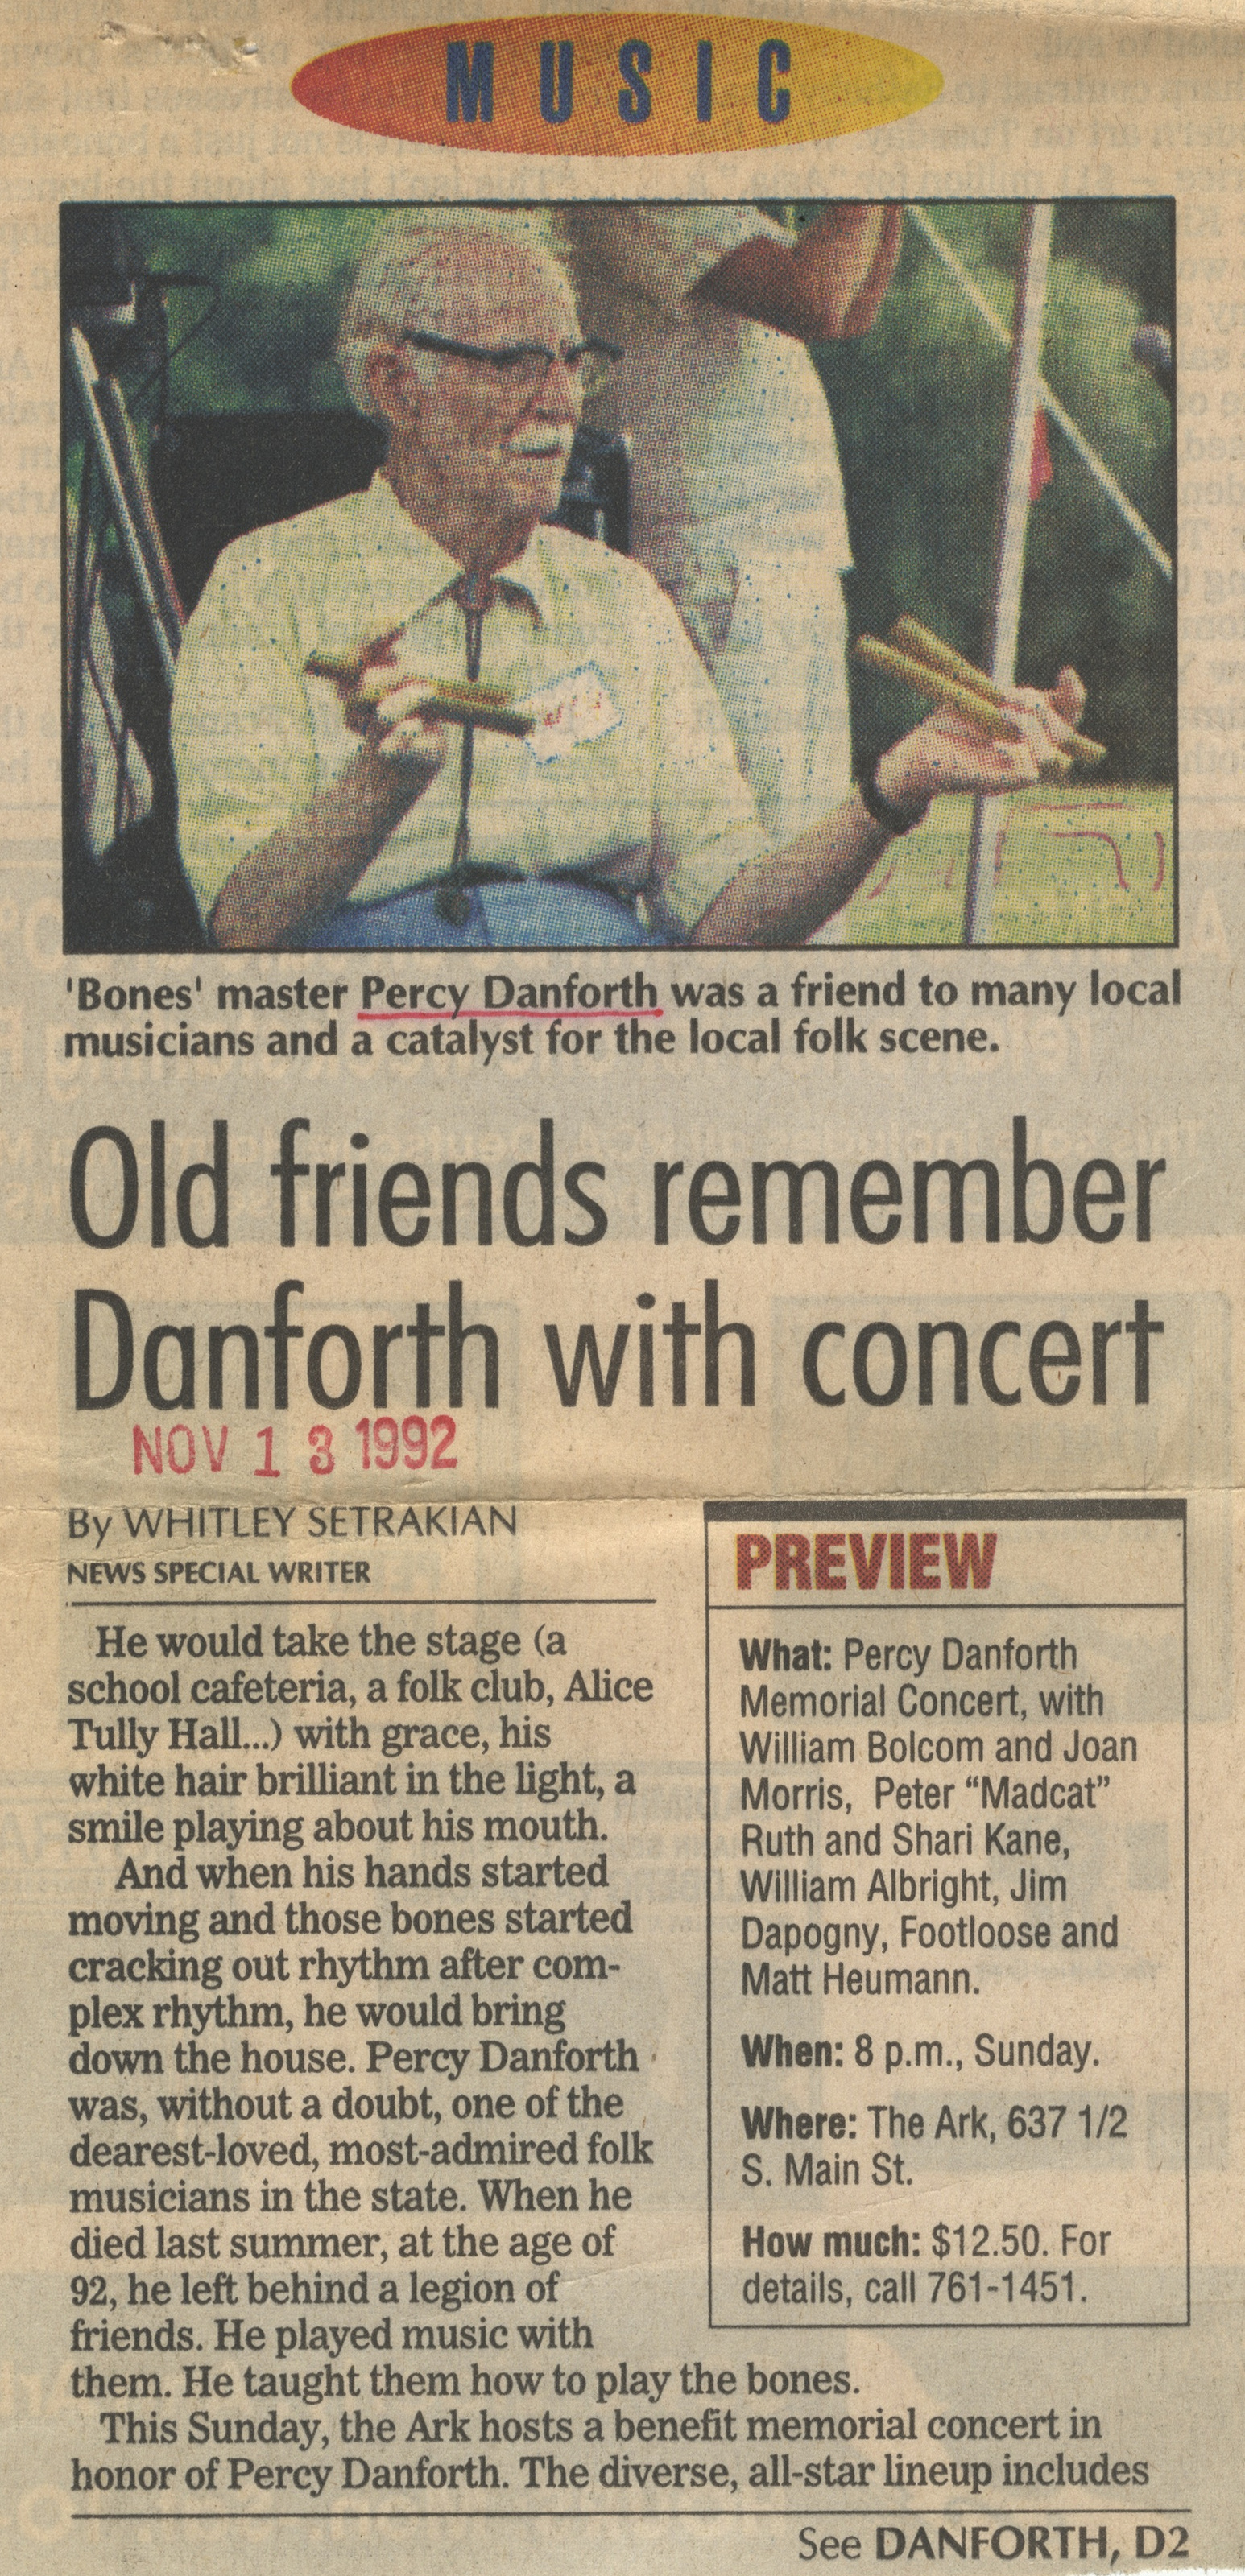 Old Friends Remember Danforth With Concert image